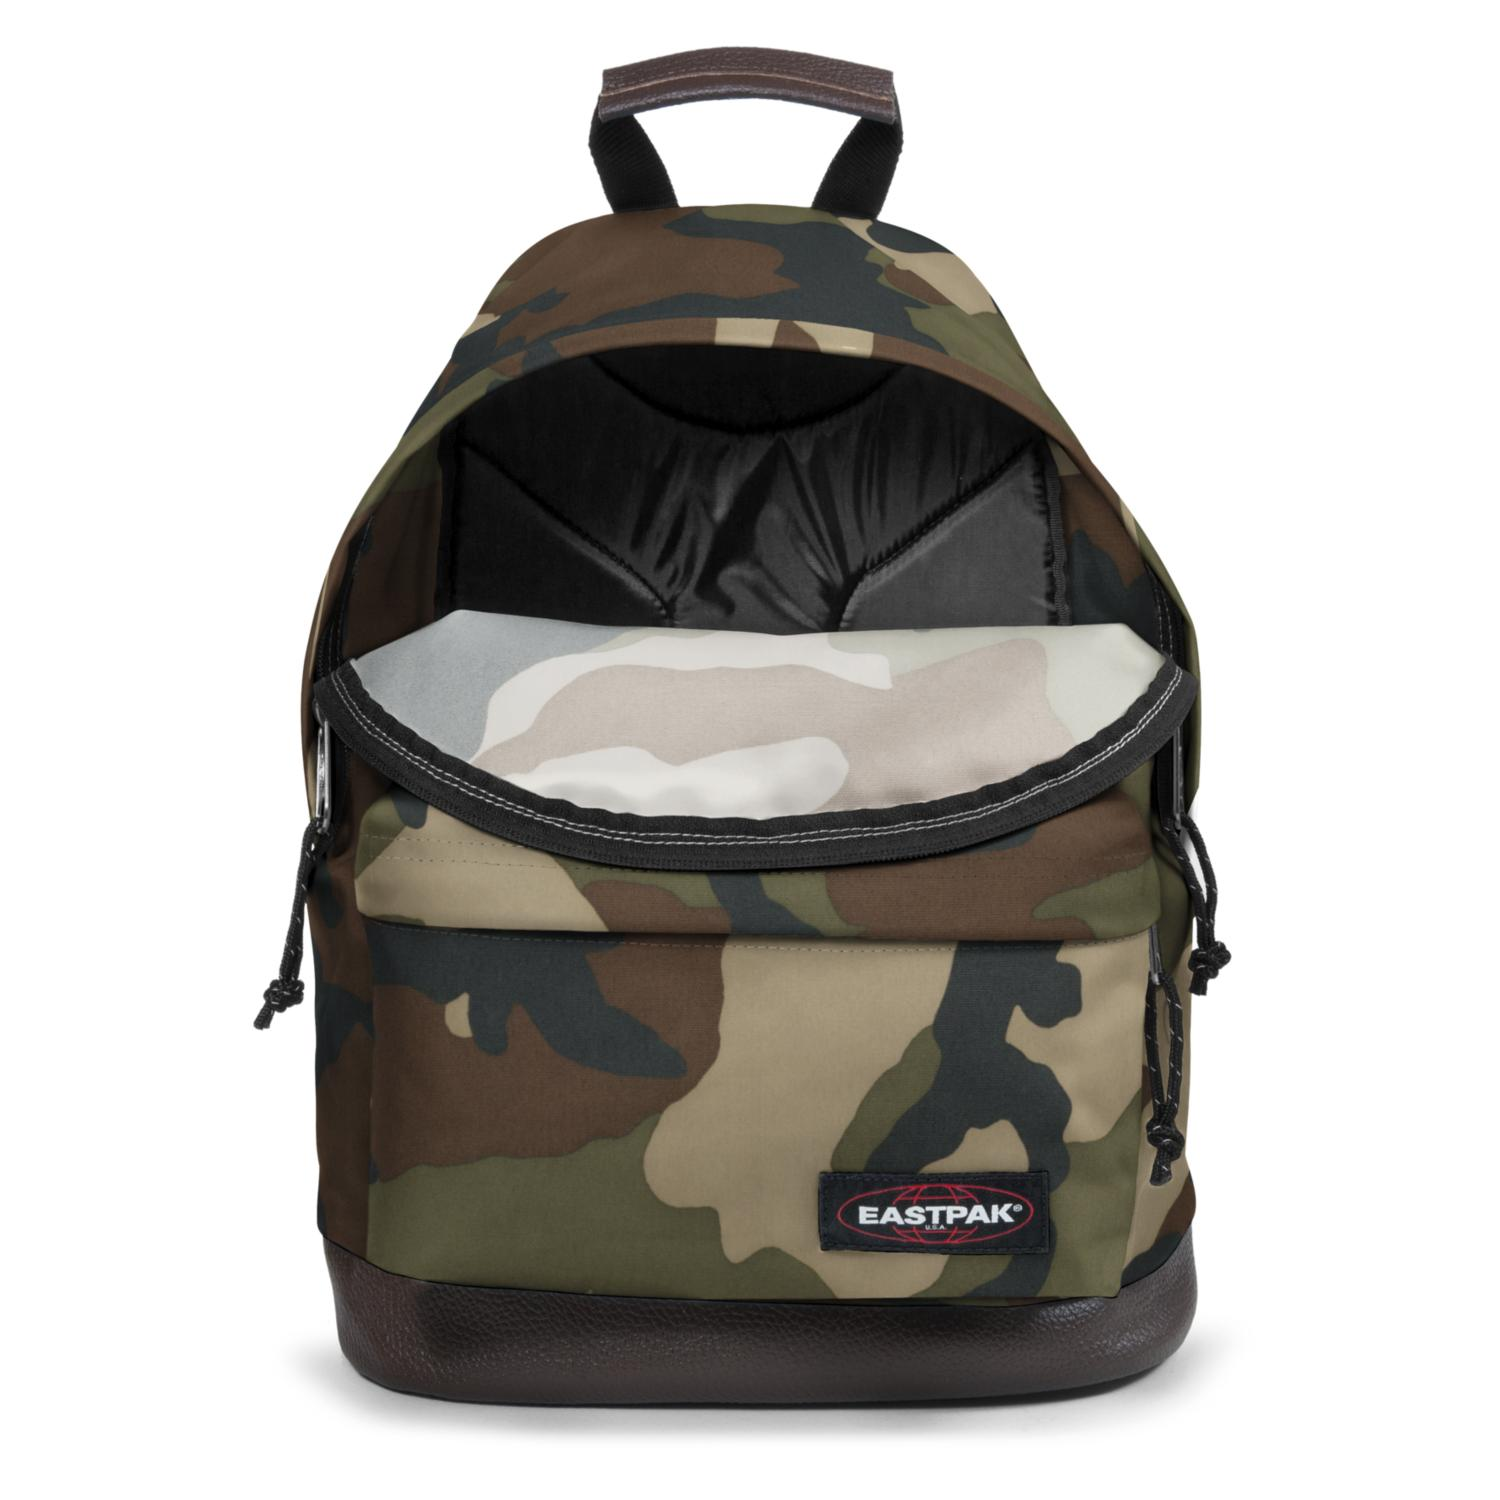 c61e9dde1f64 Details about Eastpak Backpack Wyoming Dark Green Camouflage Gepolsterer  Back